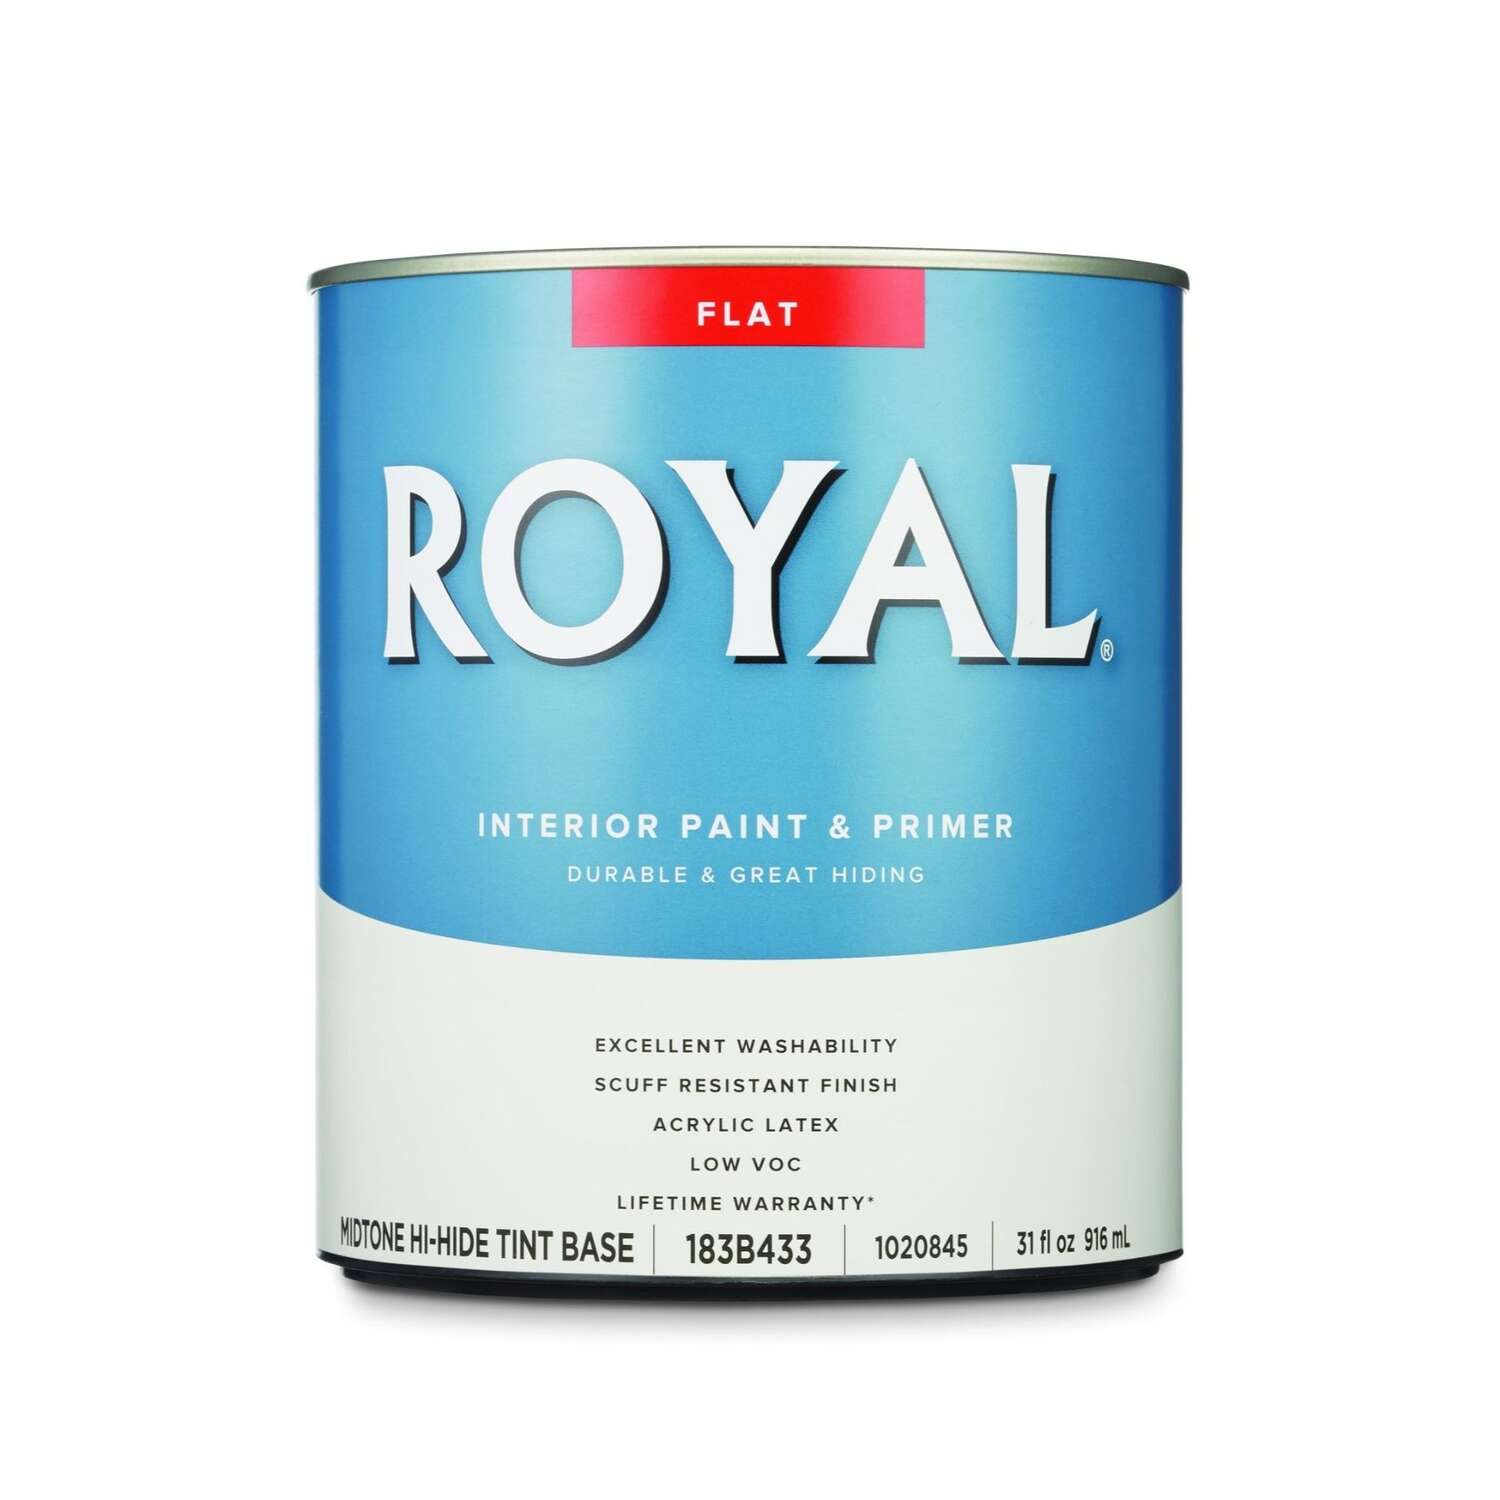 Royal  Flat  Tint Base  Mid-Tone Base  Paint  Interior  1 qt.